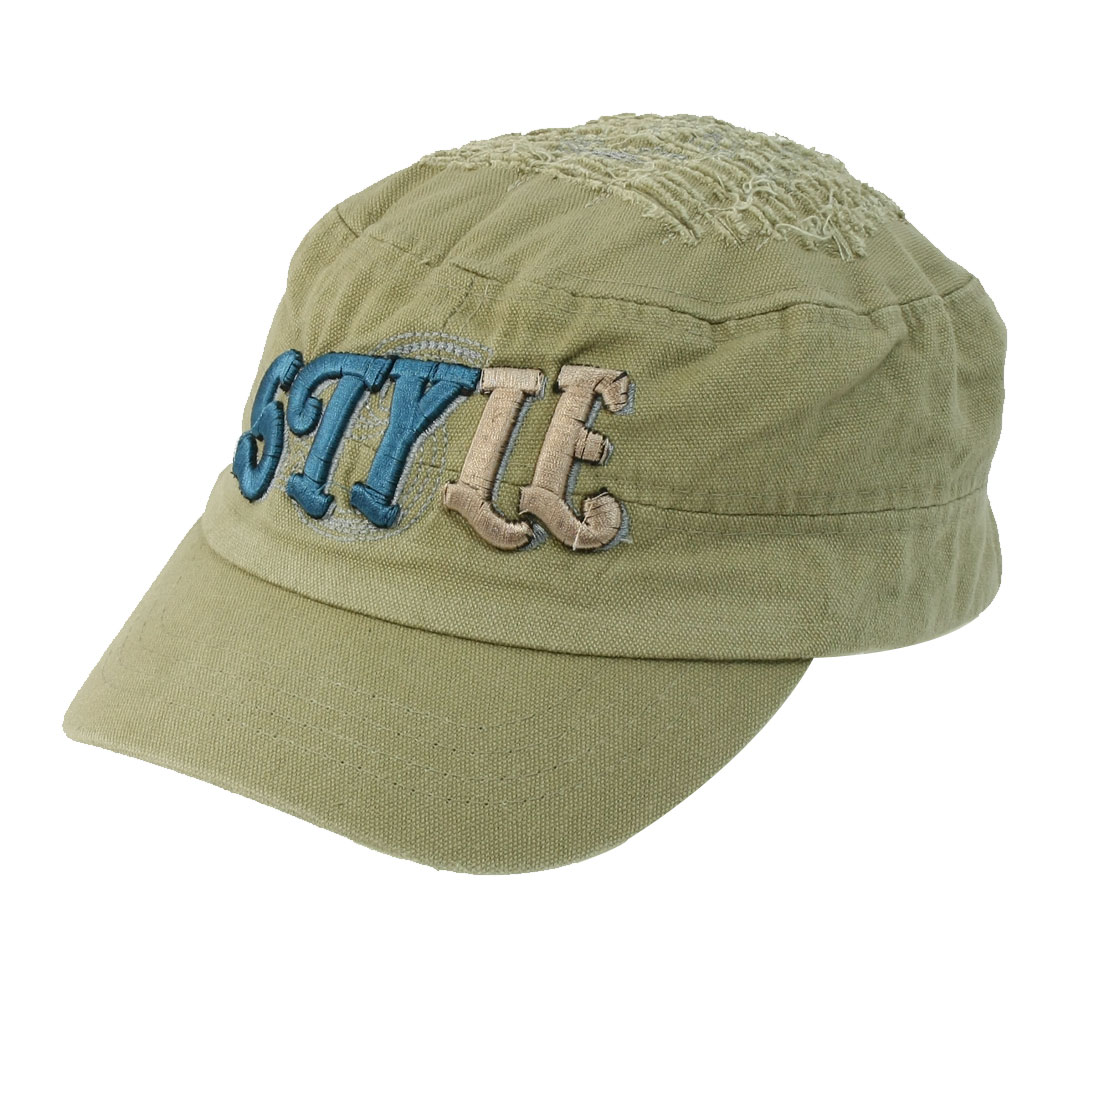 Unisex Embroidering Letter Front Decor Adjustable Peaked Cap Khaki